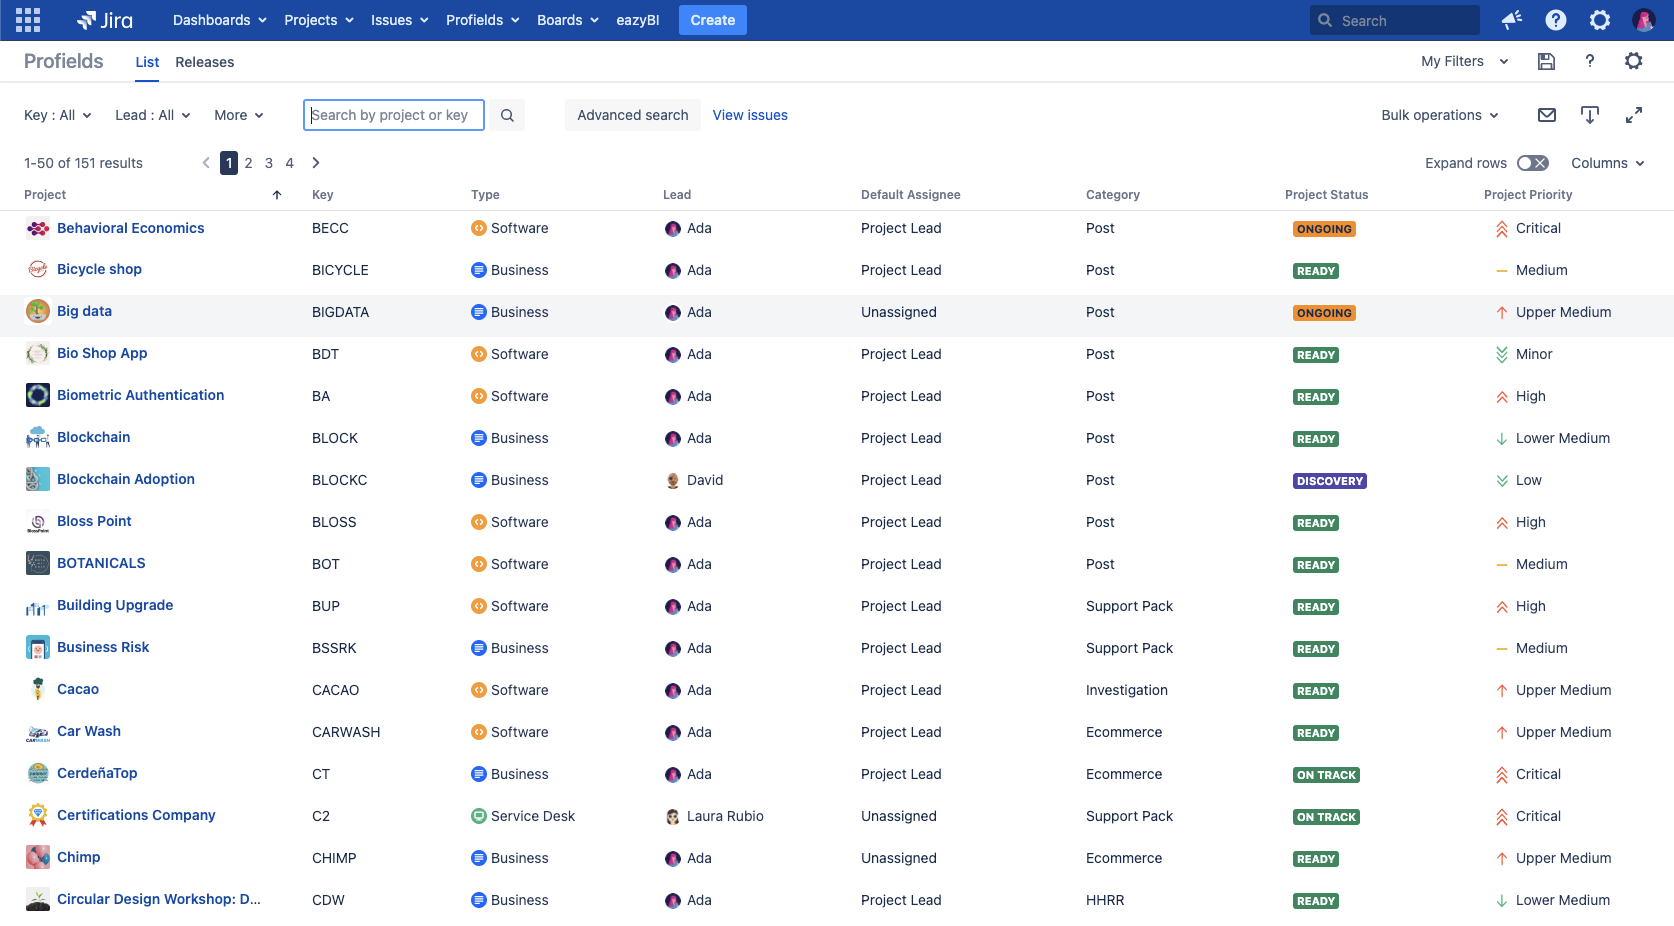 How to get Jira advanced searches for projects?